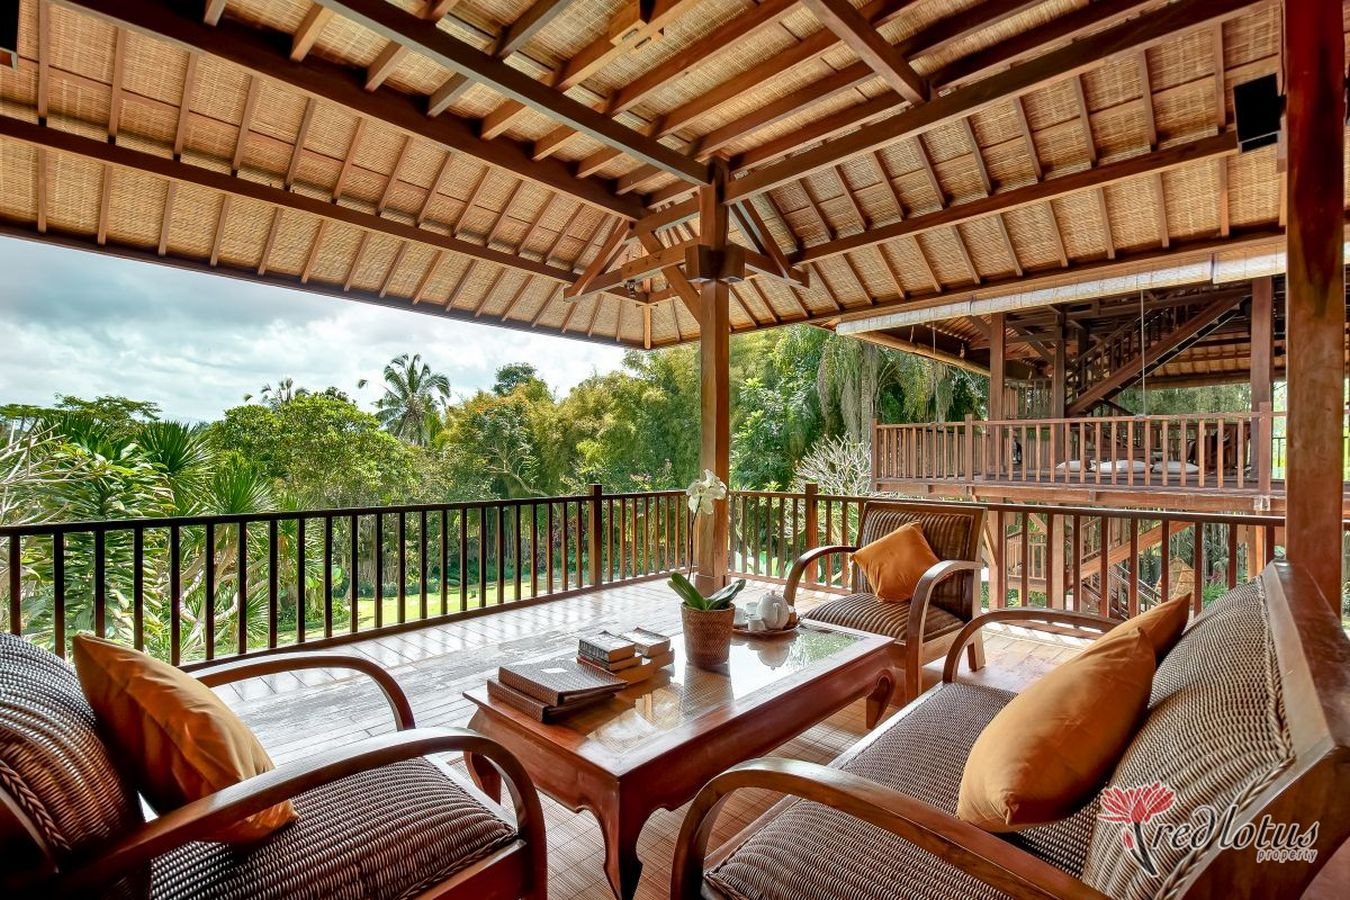 Stay in Retreat Villa in Bali Vila Atas Awan